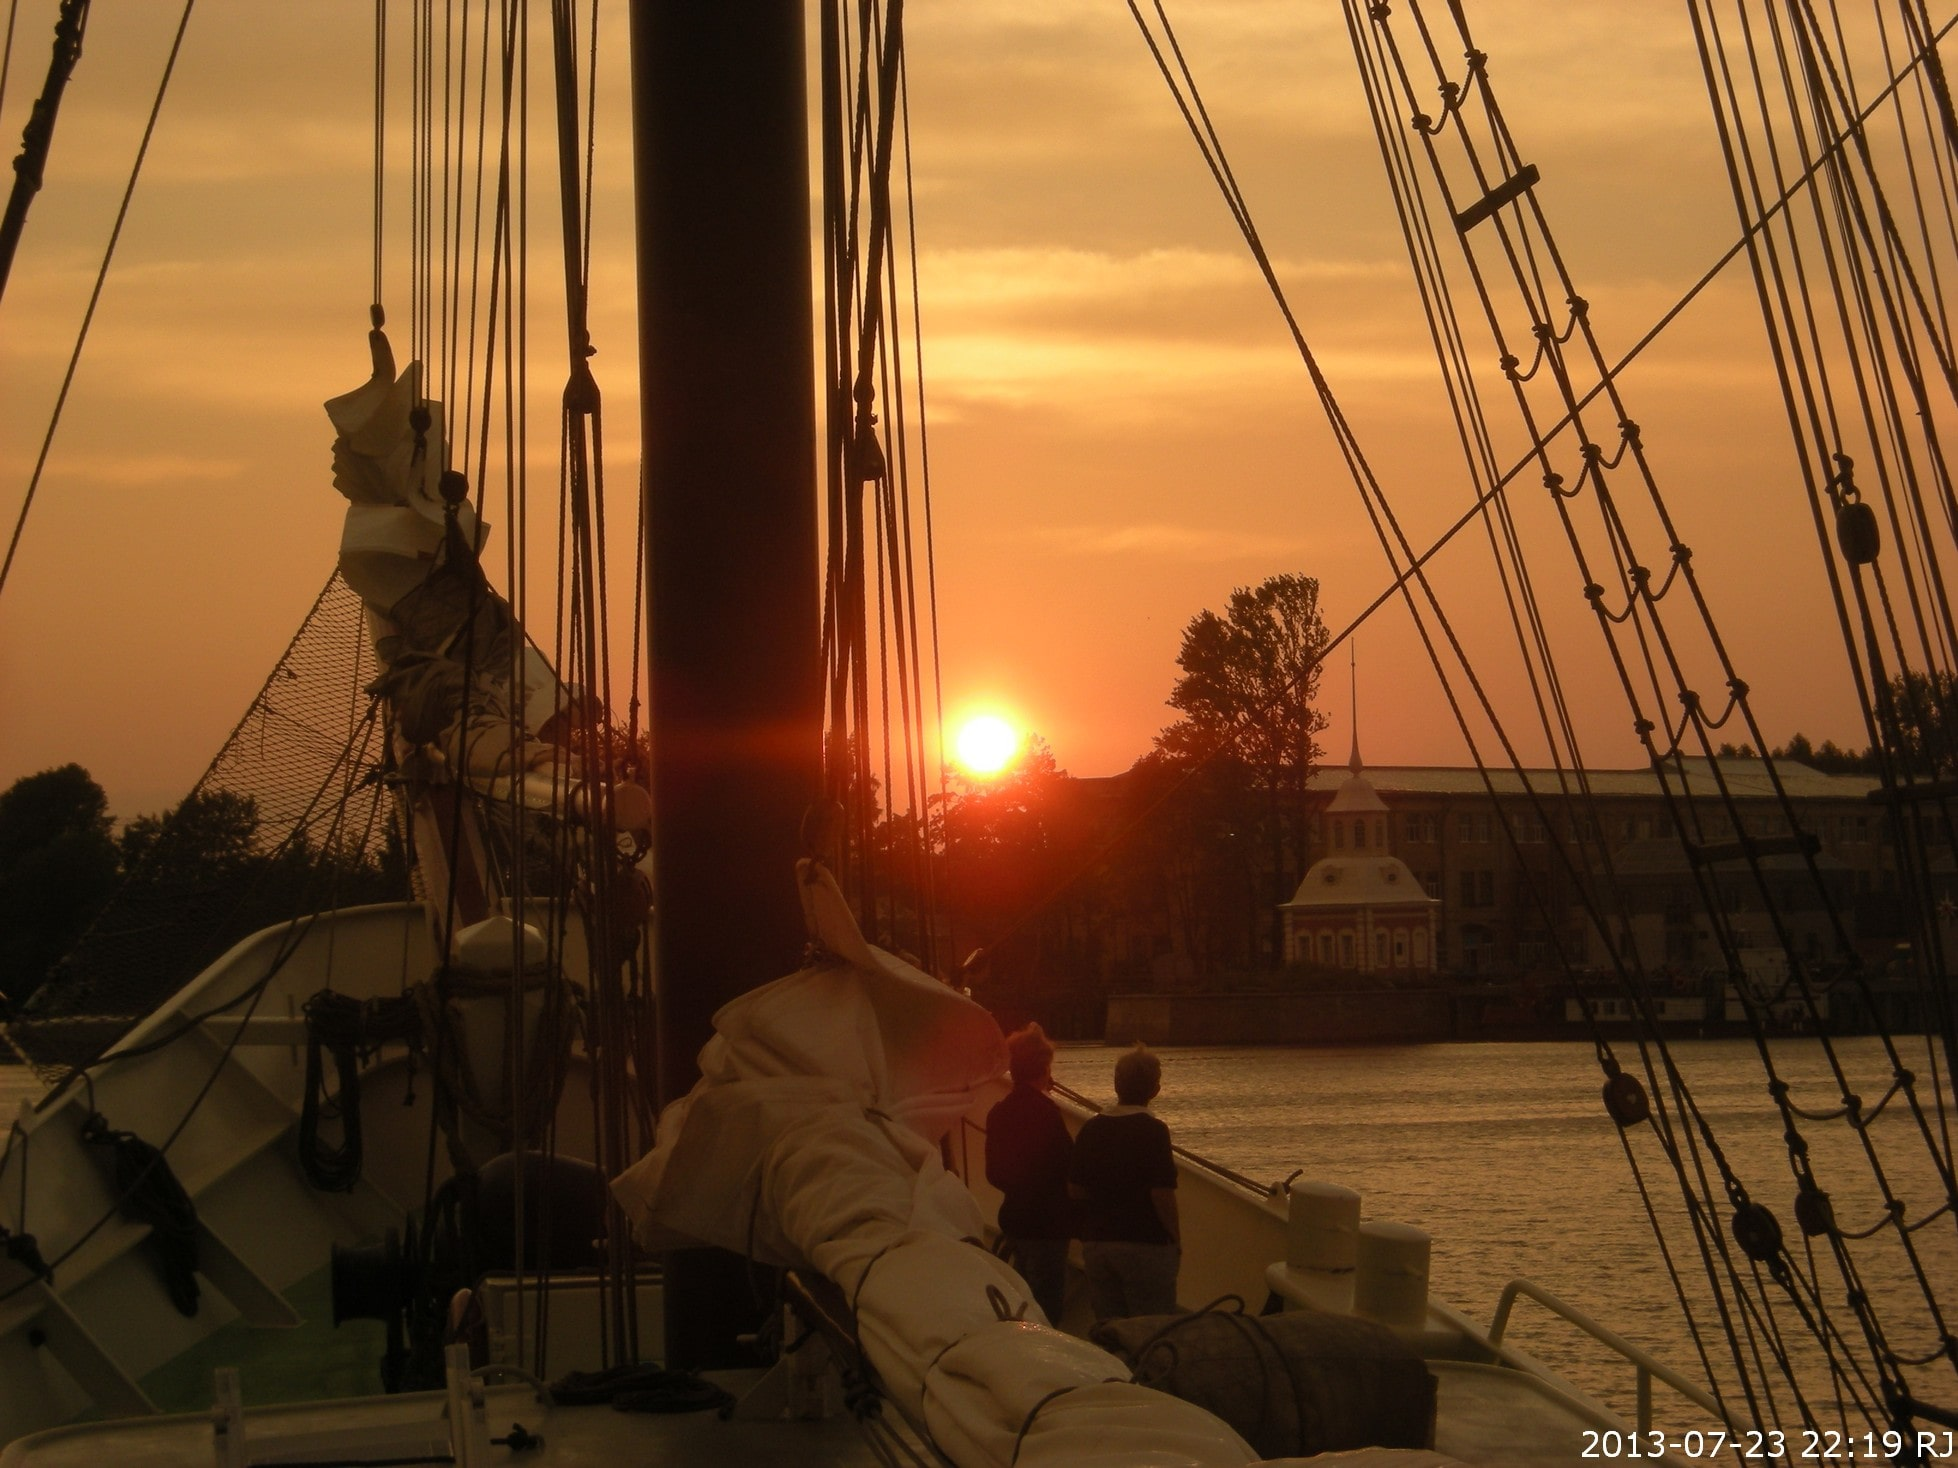 Sunset on Tall Ship Artemis